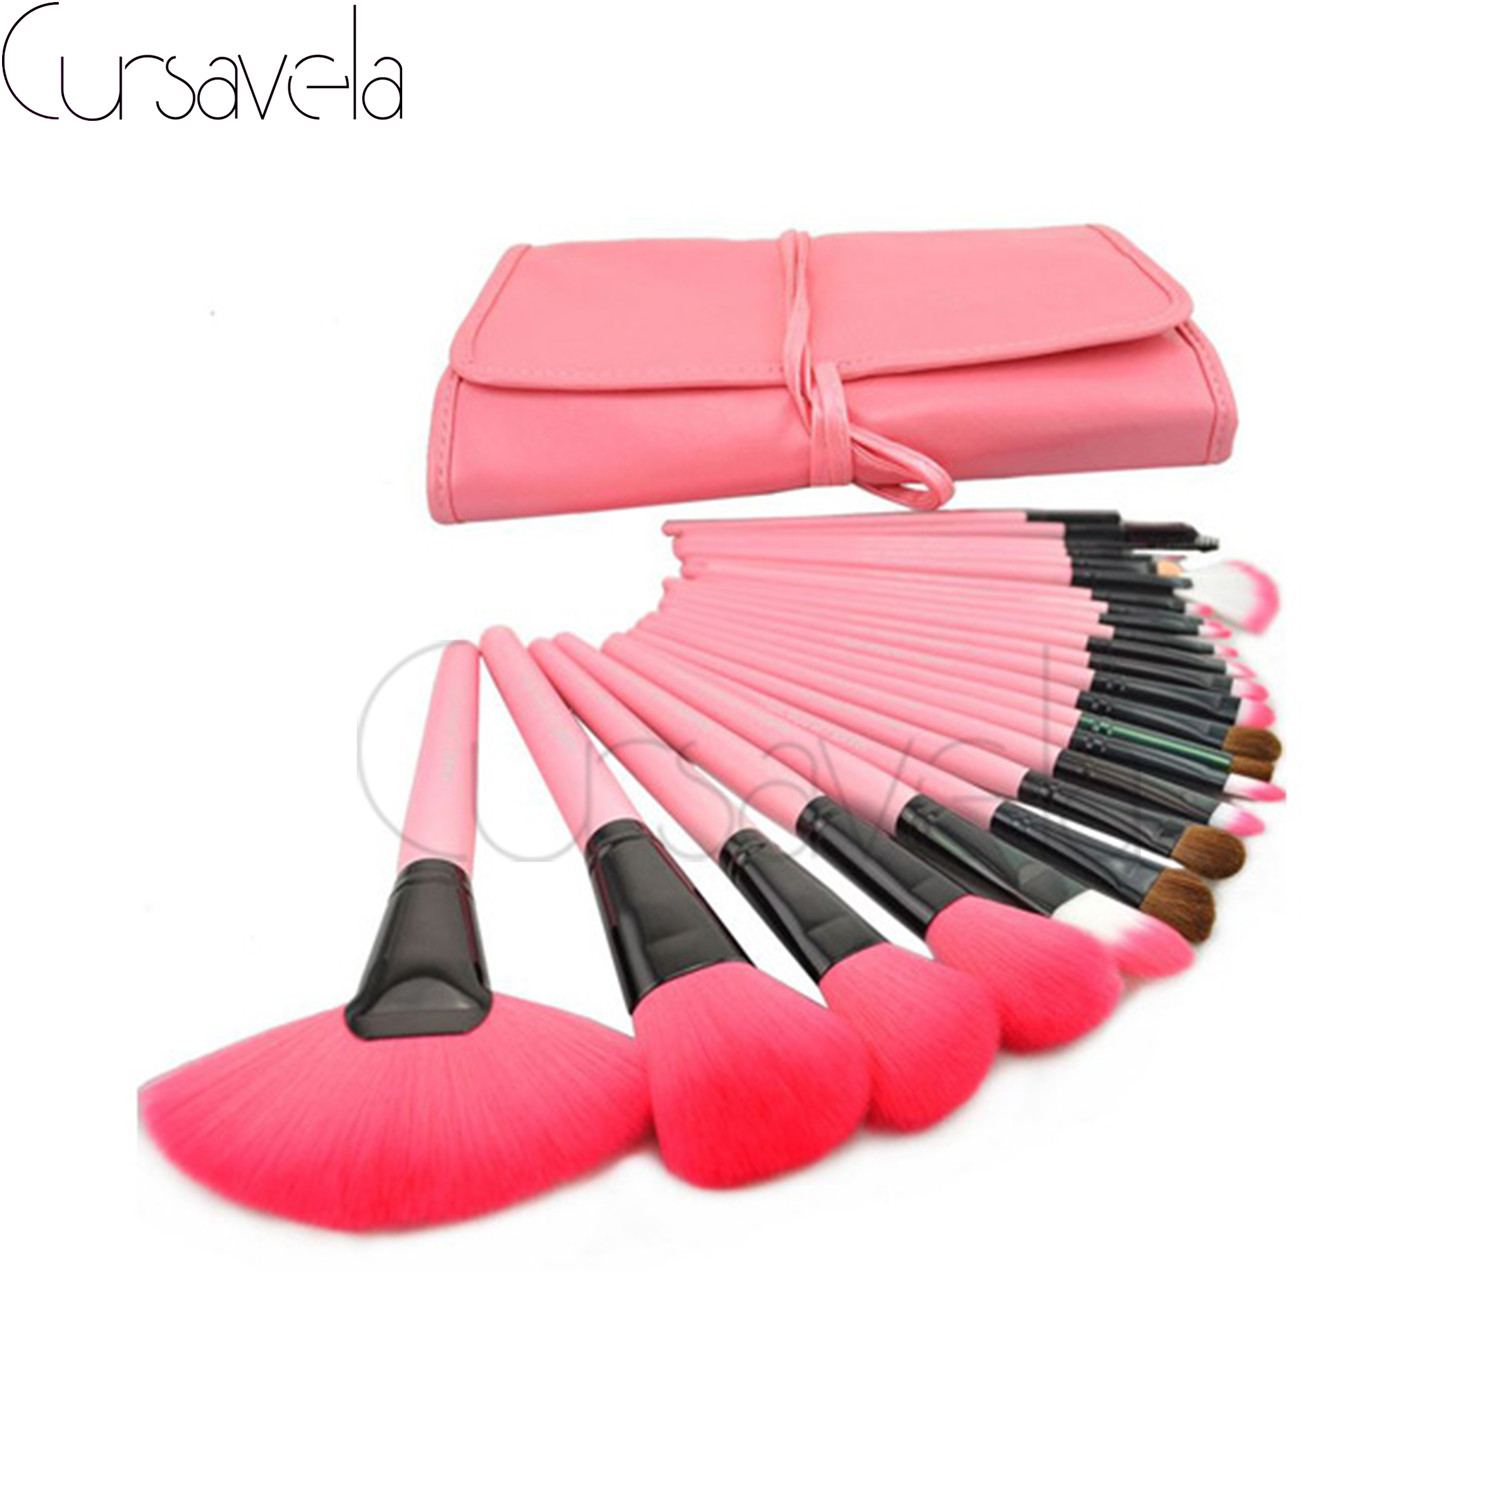 24 pcs Makeup Brushes Set Goat Hair Professional Brown Makeup Brush Foundation Powder Blush Eyeliner Brushes With PU Bag EAB030 030 brown